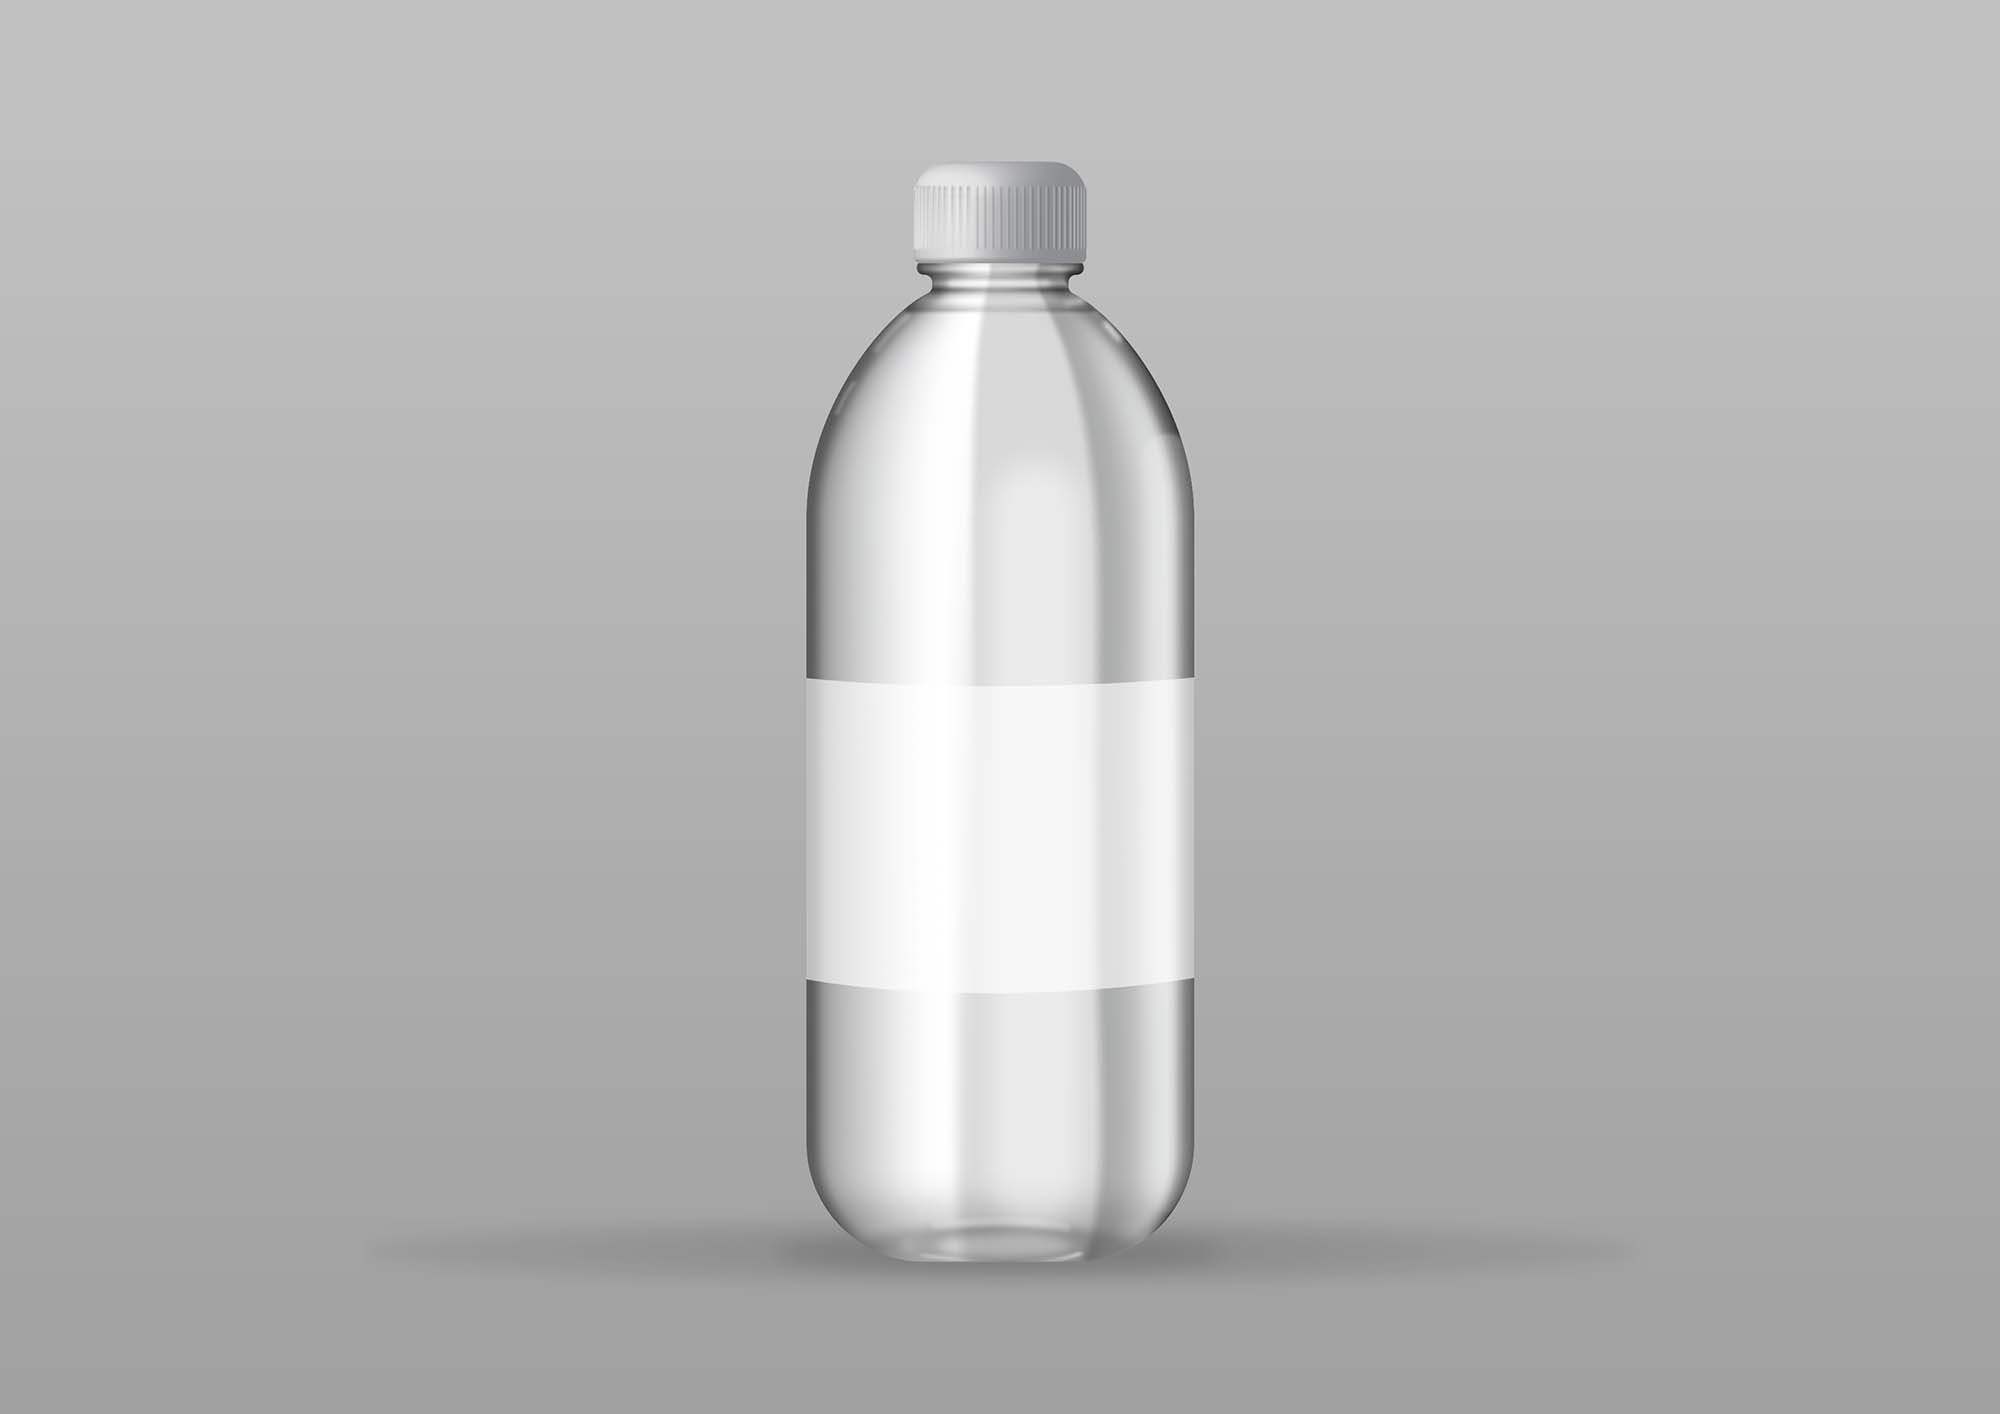 Water Bottle Mockup 2